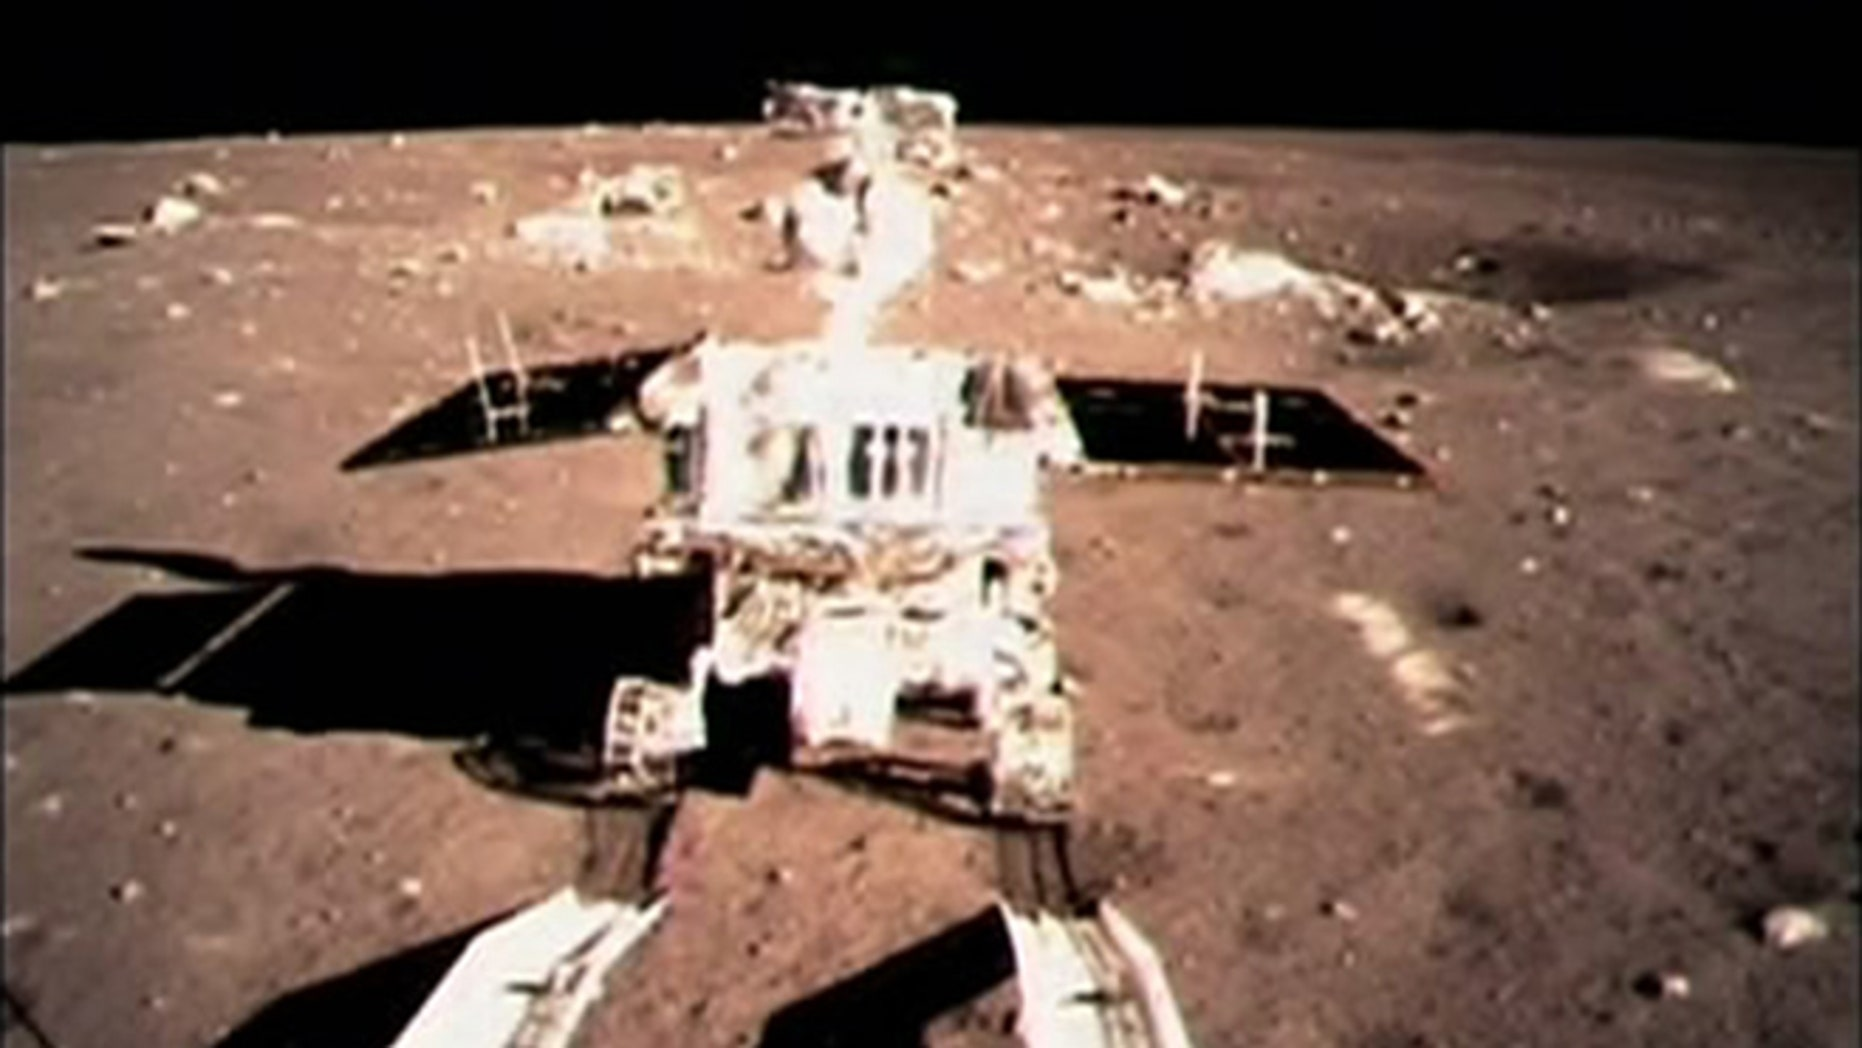 """Dec. 15, 2013: China's first moon rover """"Jade Rabbit"""" touches the lunar surface. Fans of China's Jade Rabbit moon rover sent Lunar New Year greetings to the robot on Friday, Jan. 31, 2014 -- but they'll have to wait for an answer."""